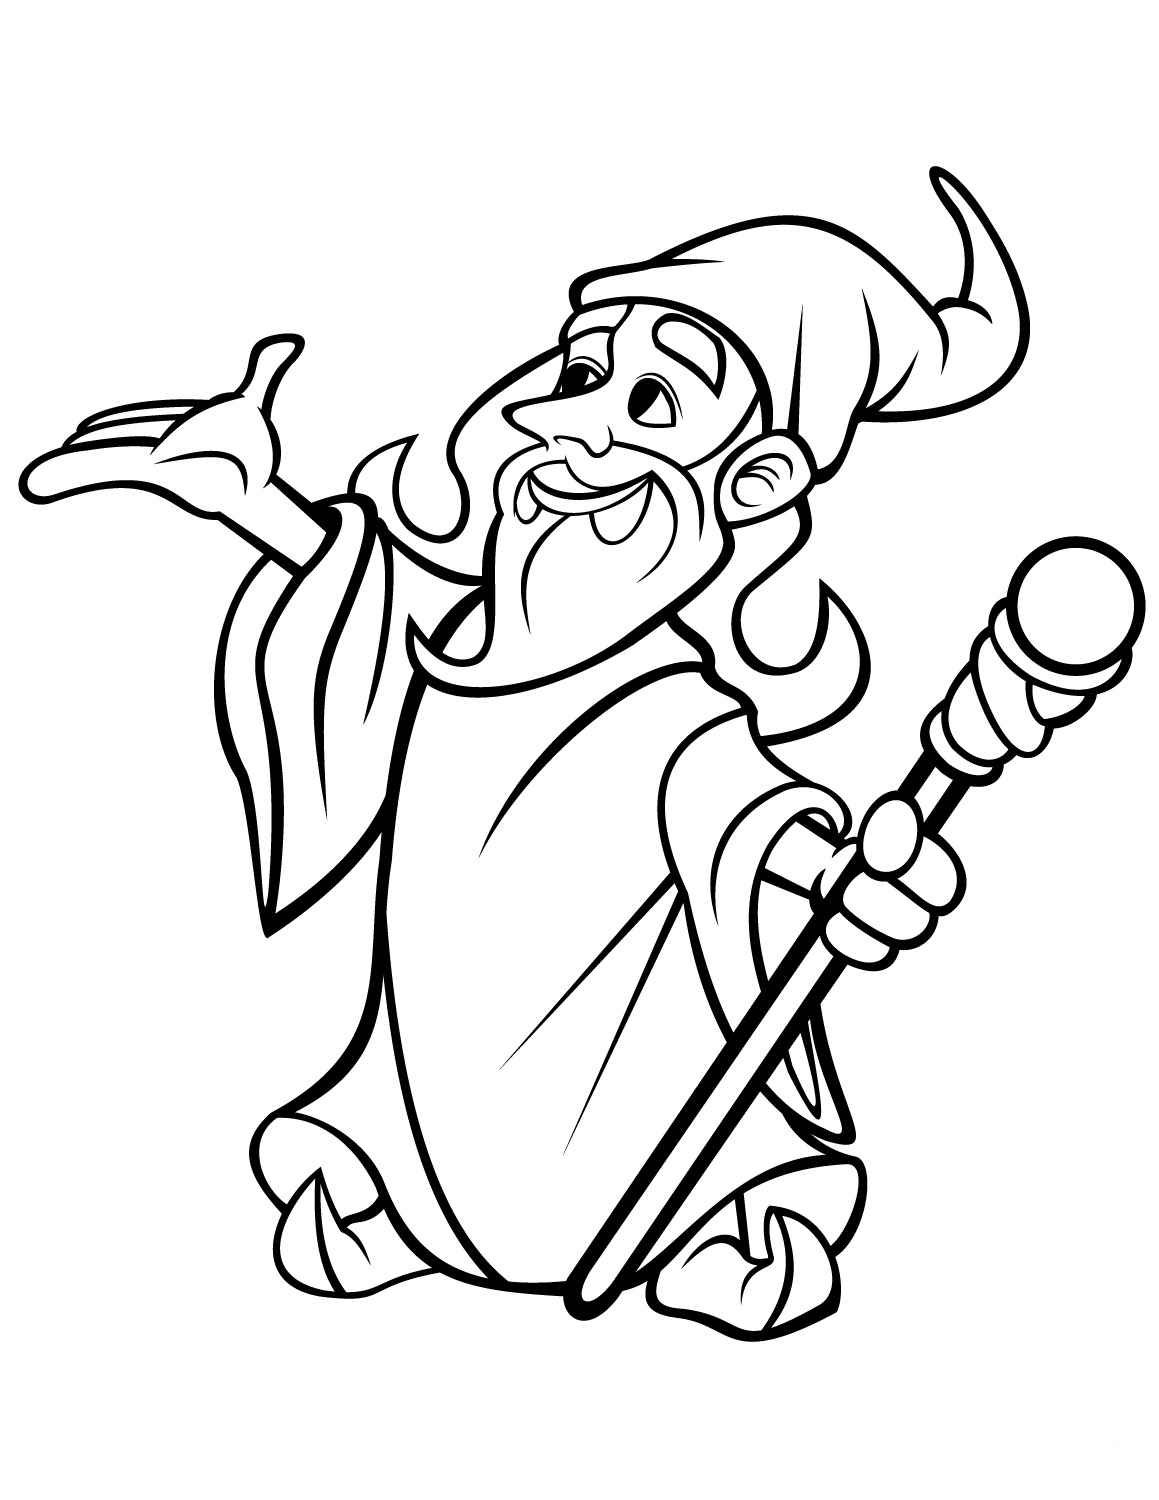 a coloring sheet vase coloring pages to download and print for free a coloring sheet